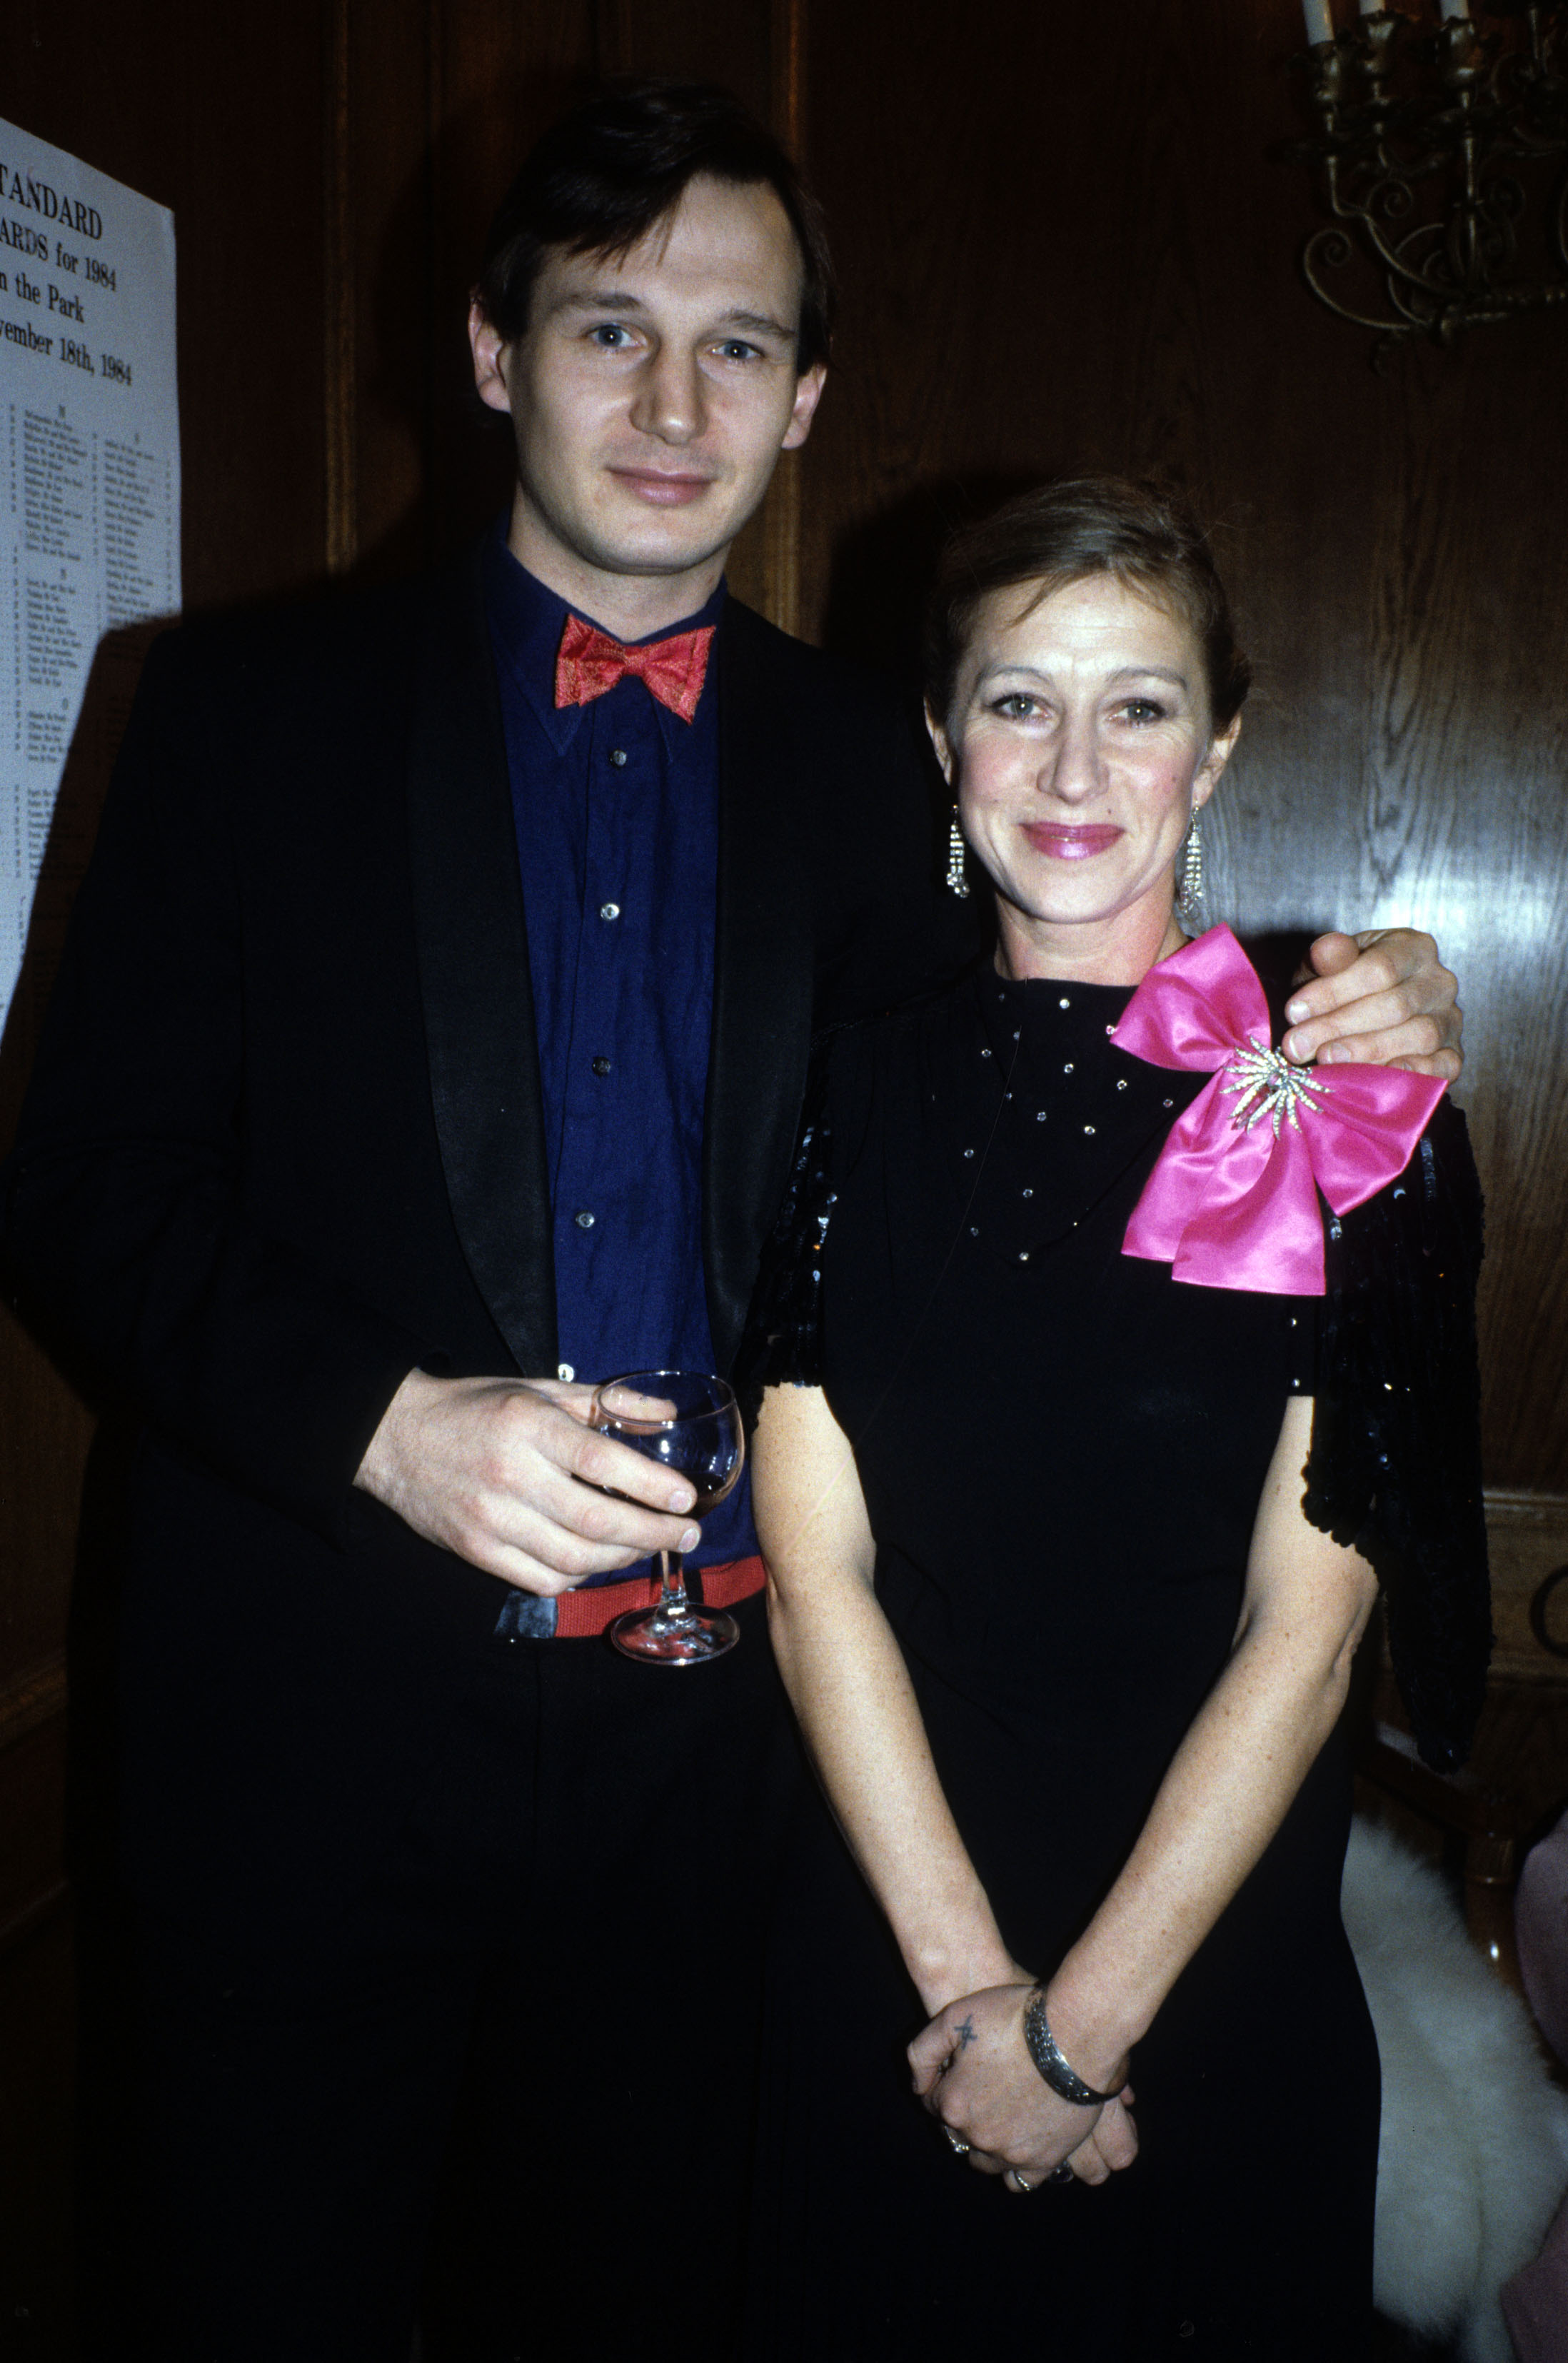 Helen Mirren, 74, Sweetly Reminisces About Fling With Ex Liam Neeson, 67, in the '80s